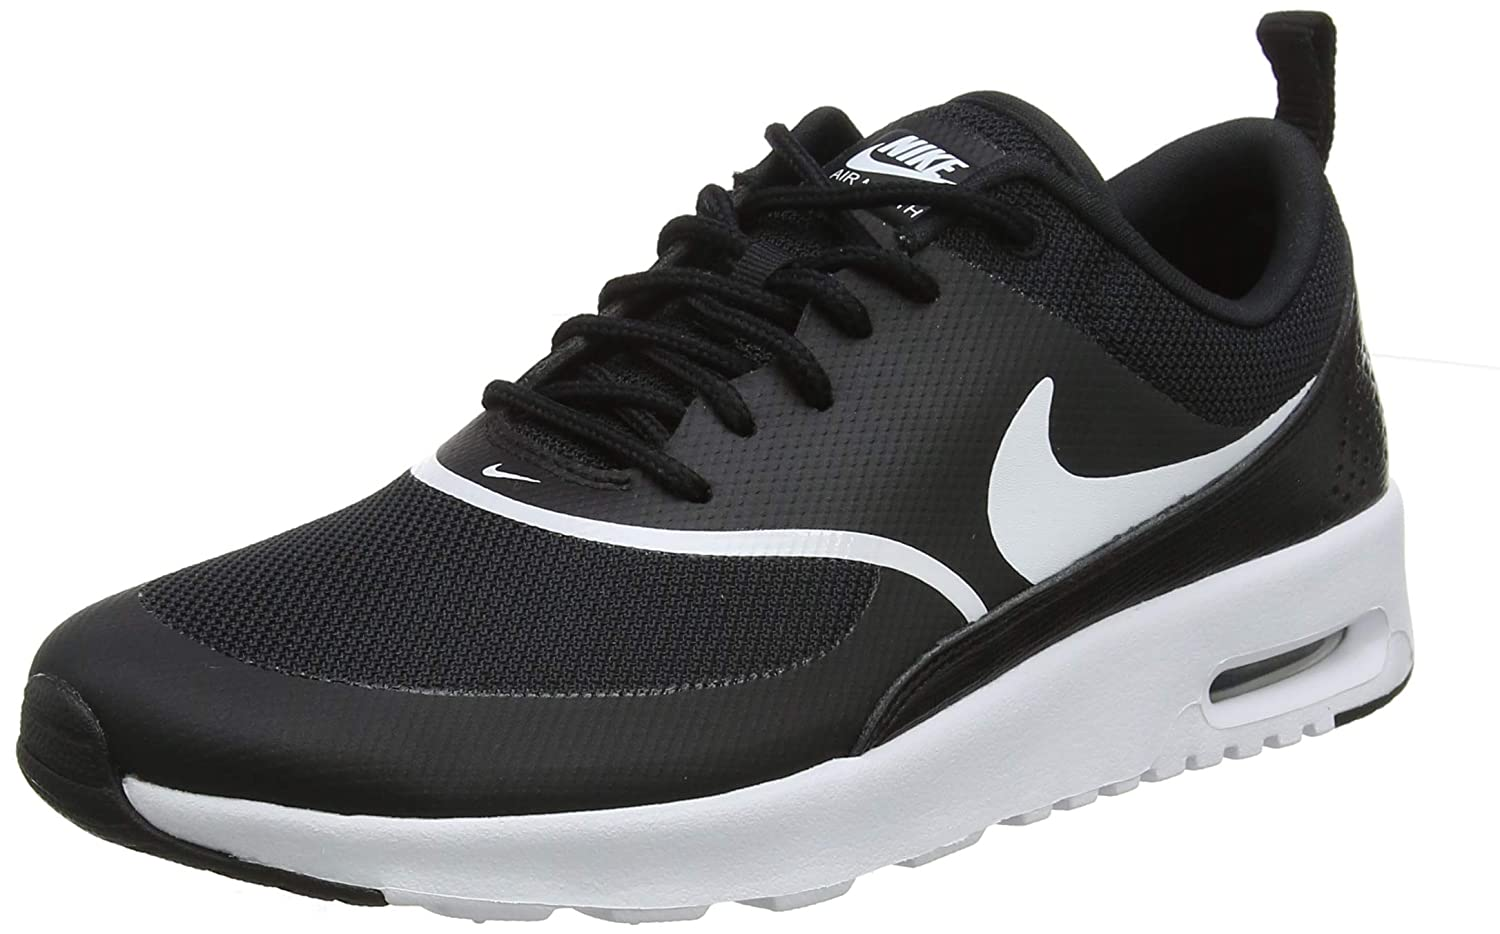 new style 2eac3 2aac9 Nike Women s Air Max Thea Low-Top Sneakers  Amazon.co.uk  Shoes   Bags